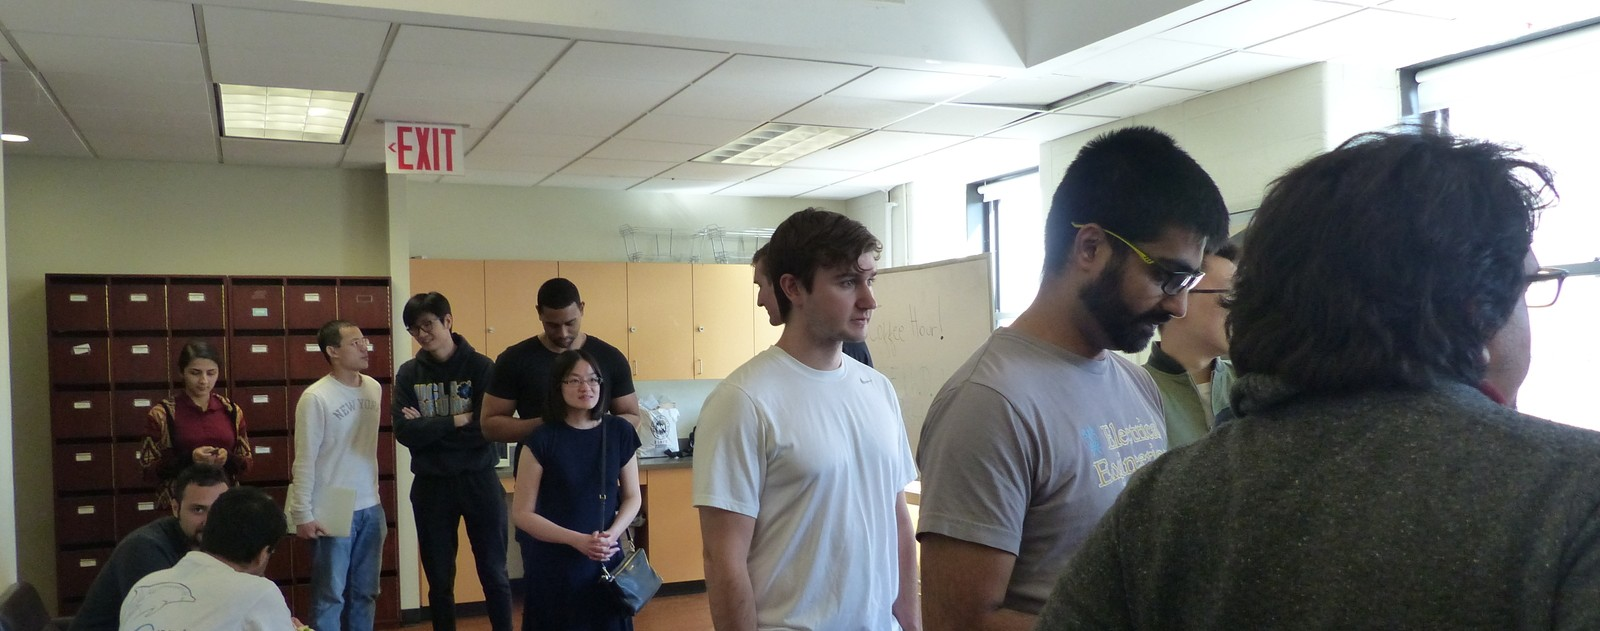 Graduate electrical engineering students lining up for lunch during a mid-semester get-together